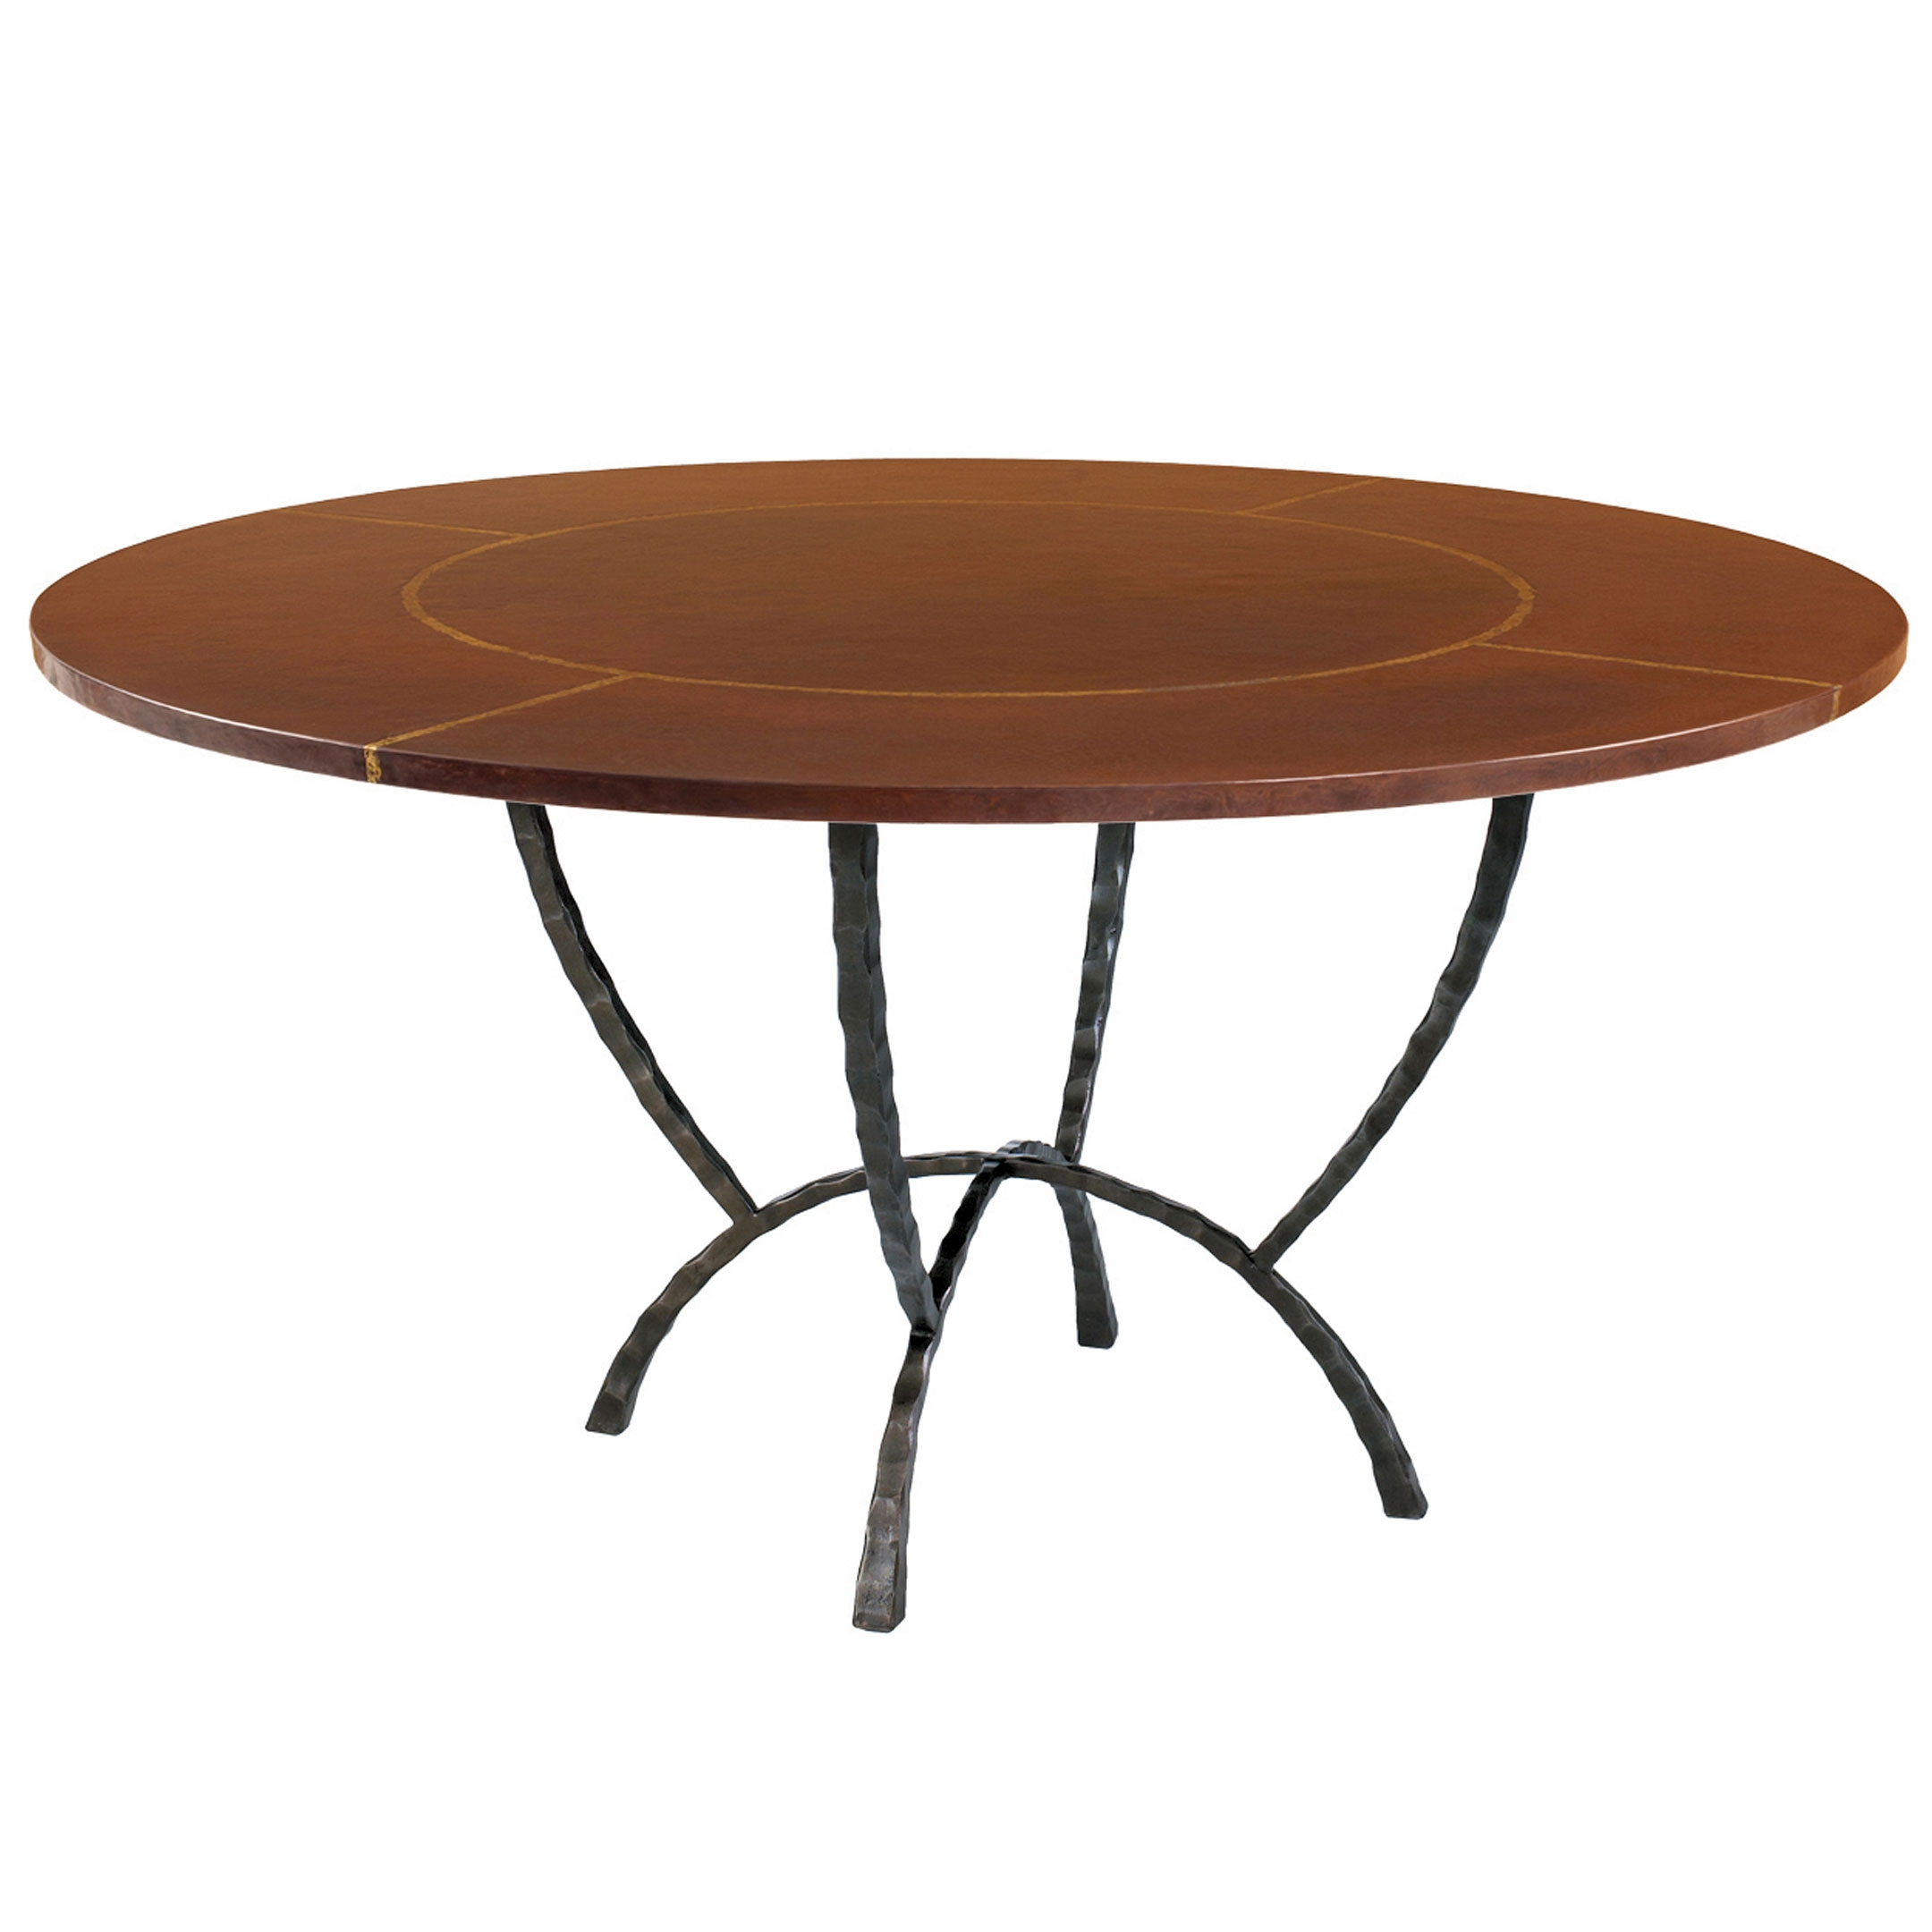 Wrought Iron Hudson  Inch Round Dining Table - 60 inch round wrought iron outdoor dining tables